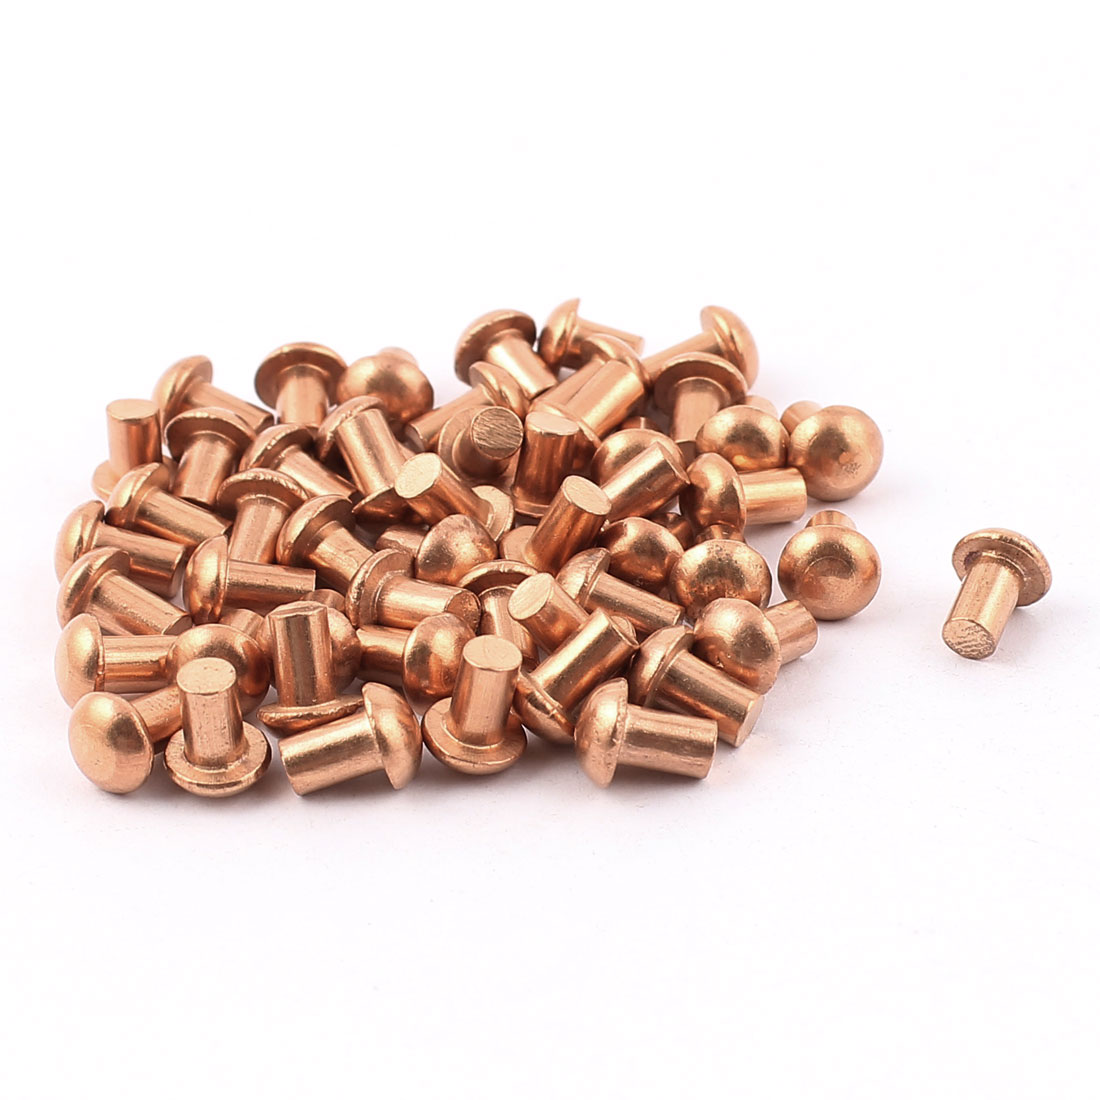 "50 Pcs 5/32"" x 1/4"" Round Head Copper Solid Rivets Fasteners"